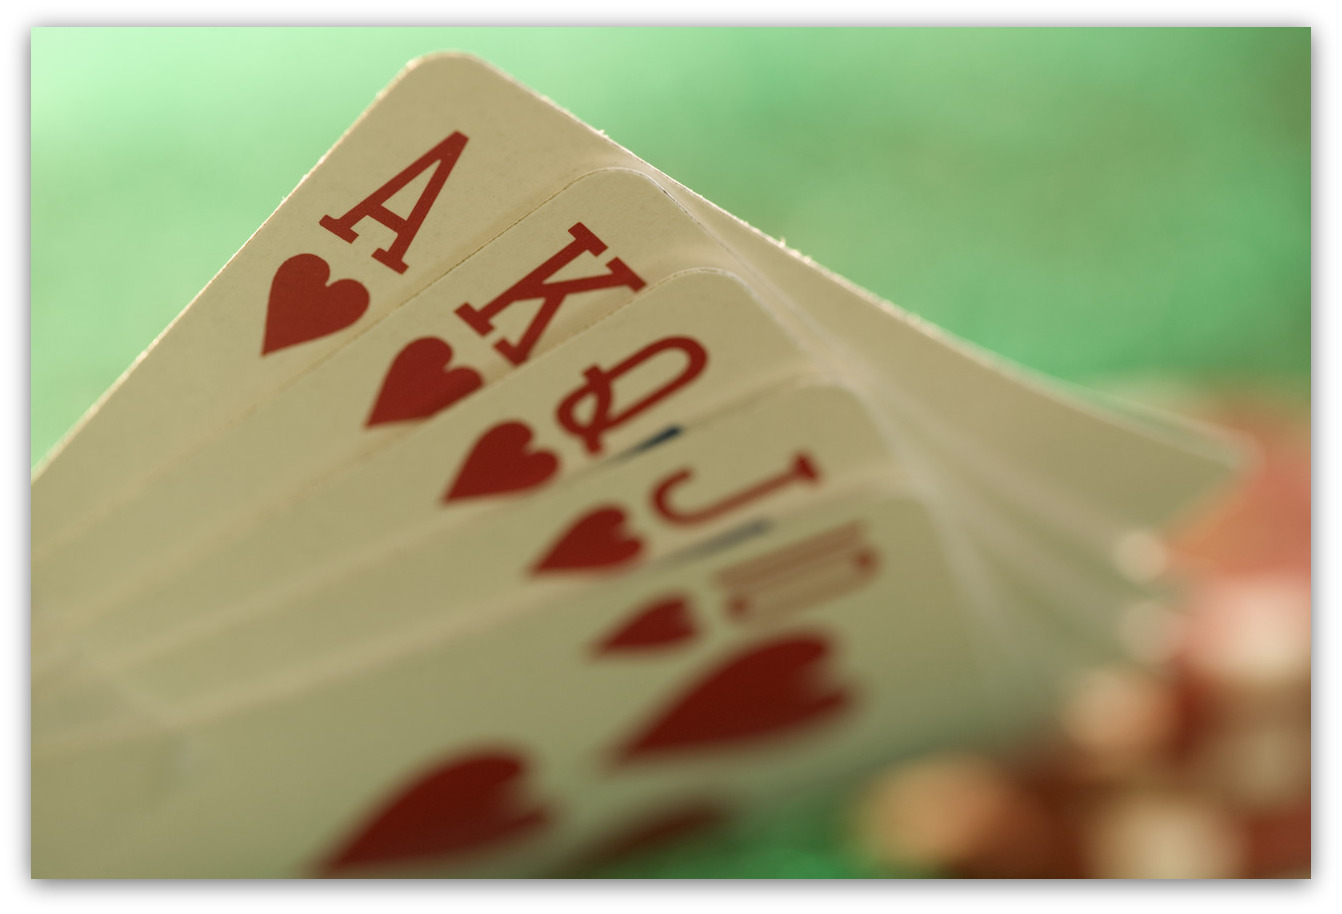 5 Card Draw Rules The Poker Source Online Poker Strategy Poker